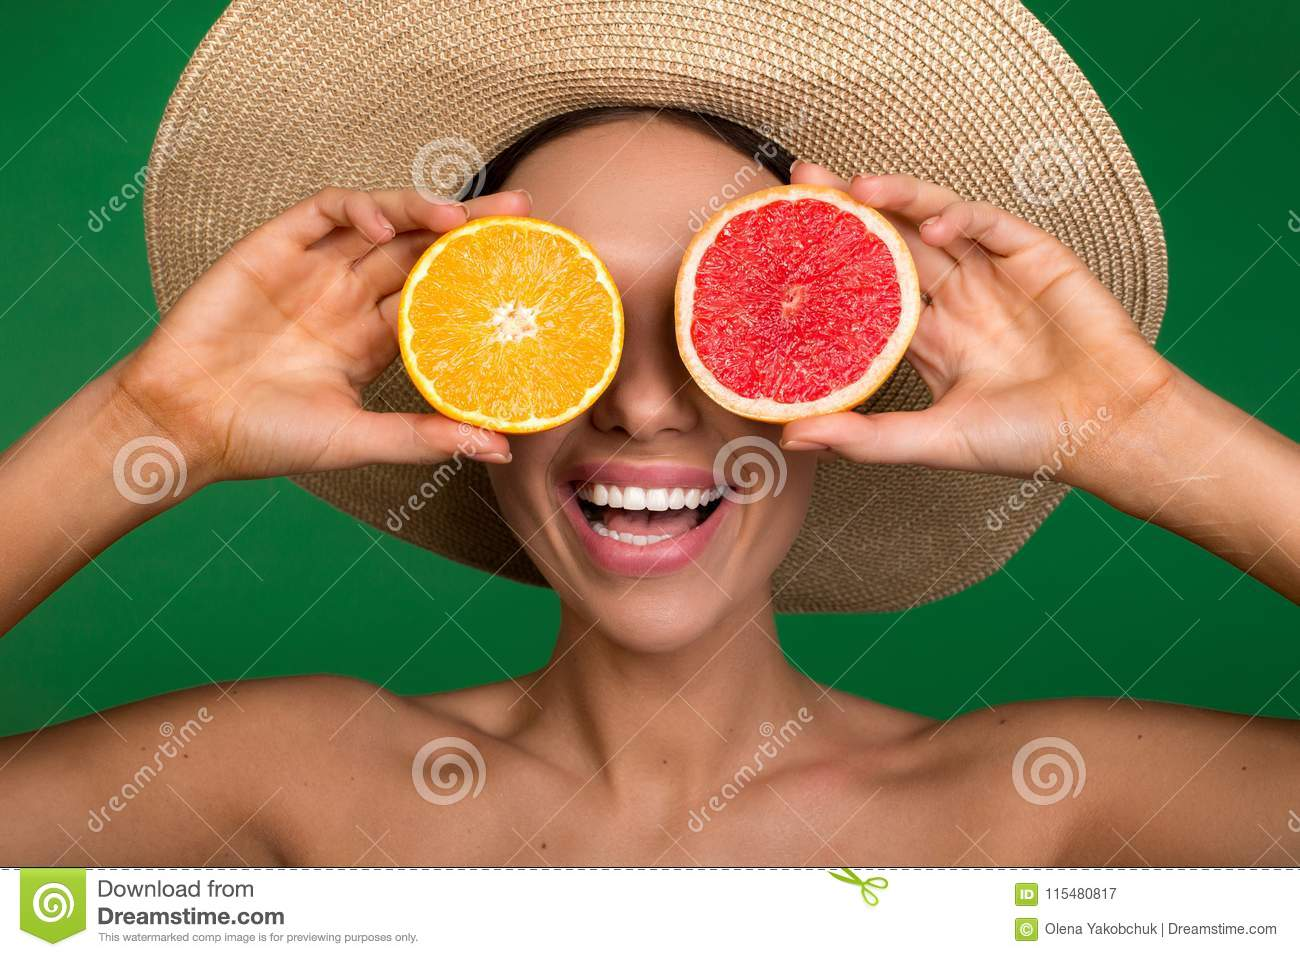 ee2744390d1 Glad Girl With Fruit Instead Of Eyeballs Stock Image - Image of diet ...